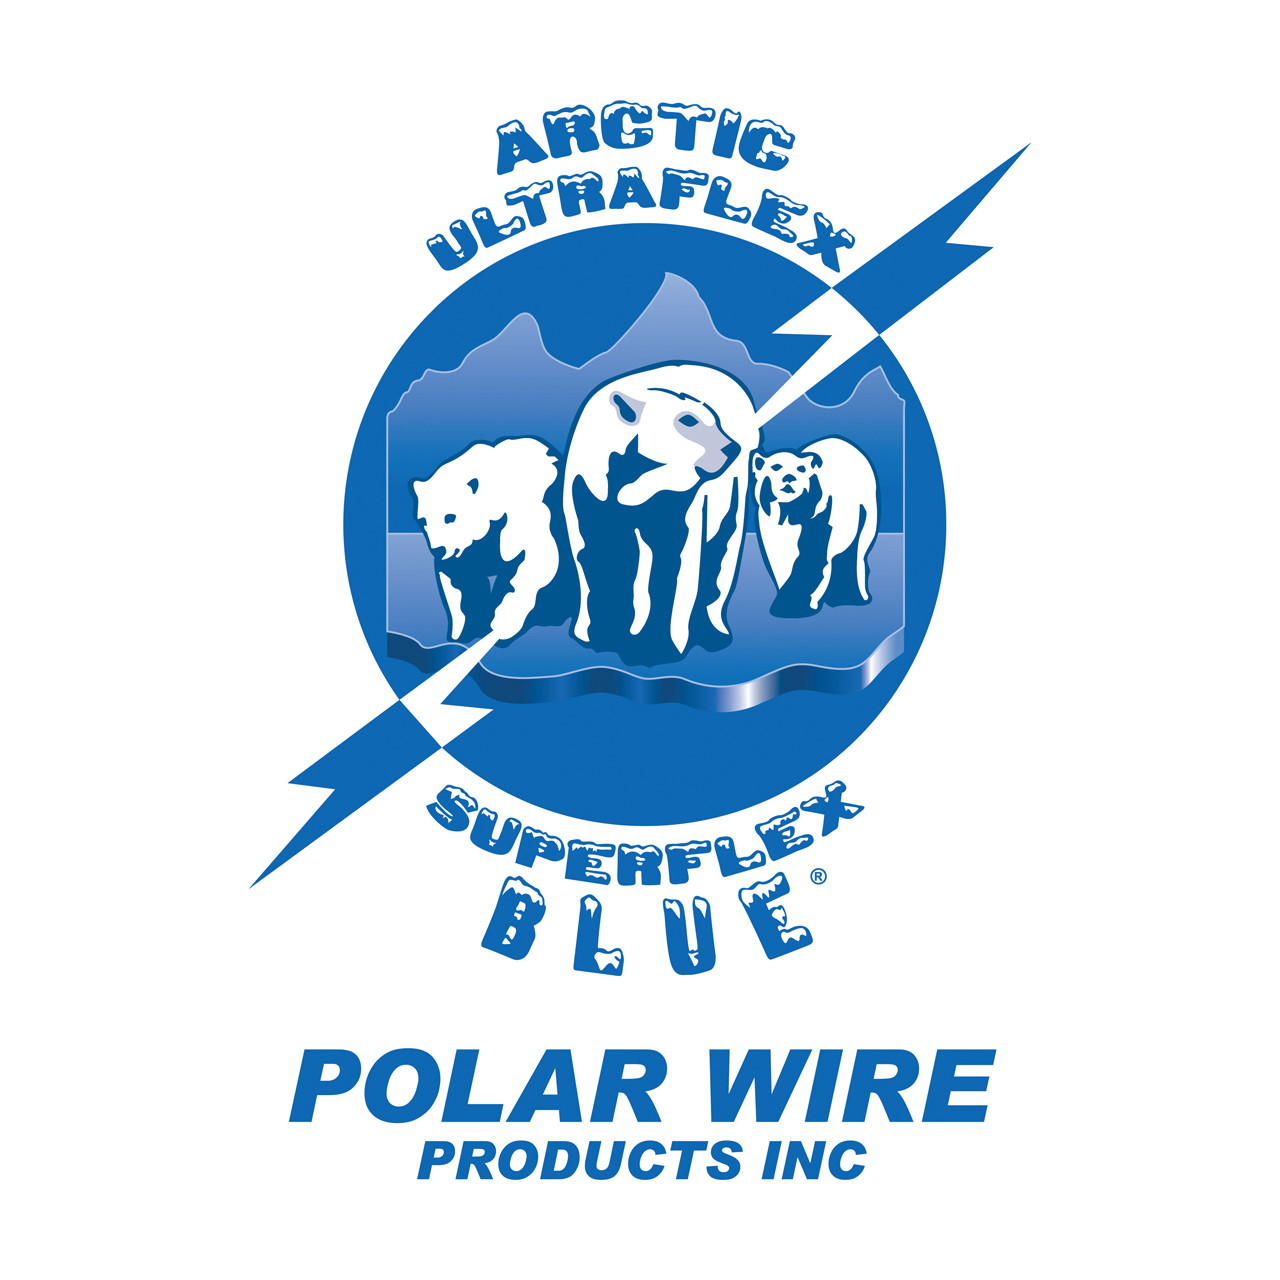 Arctic Ultraflex Blue and Arctic Superflex Blue 100% copper Class K fine stranded cold weather flexible wire and cable is manufactured exclusively by Polar Wire Products. Made in the USA